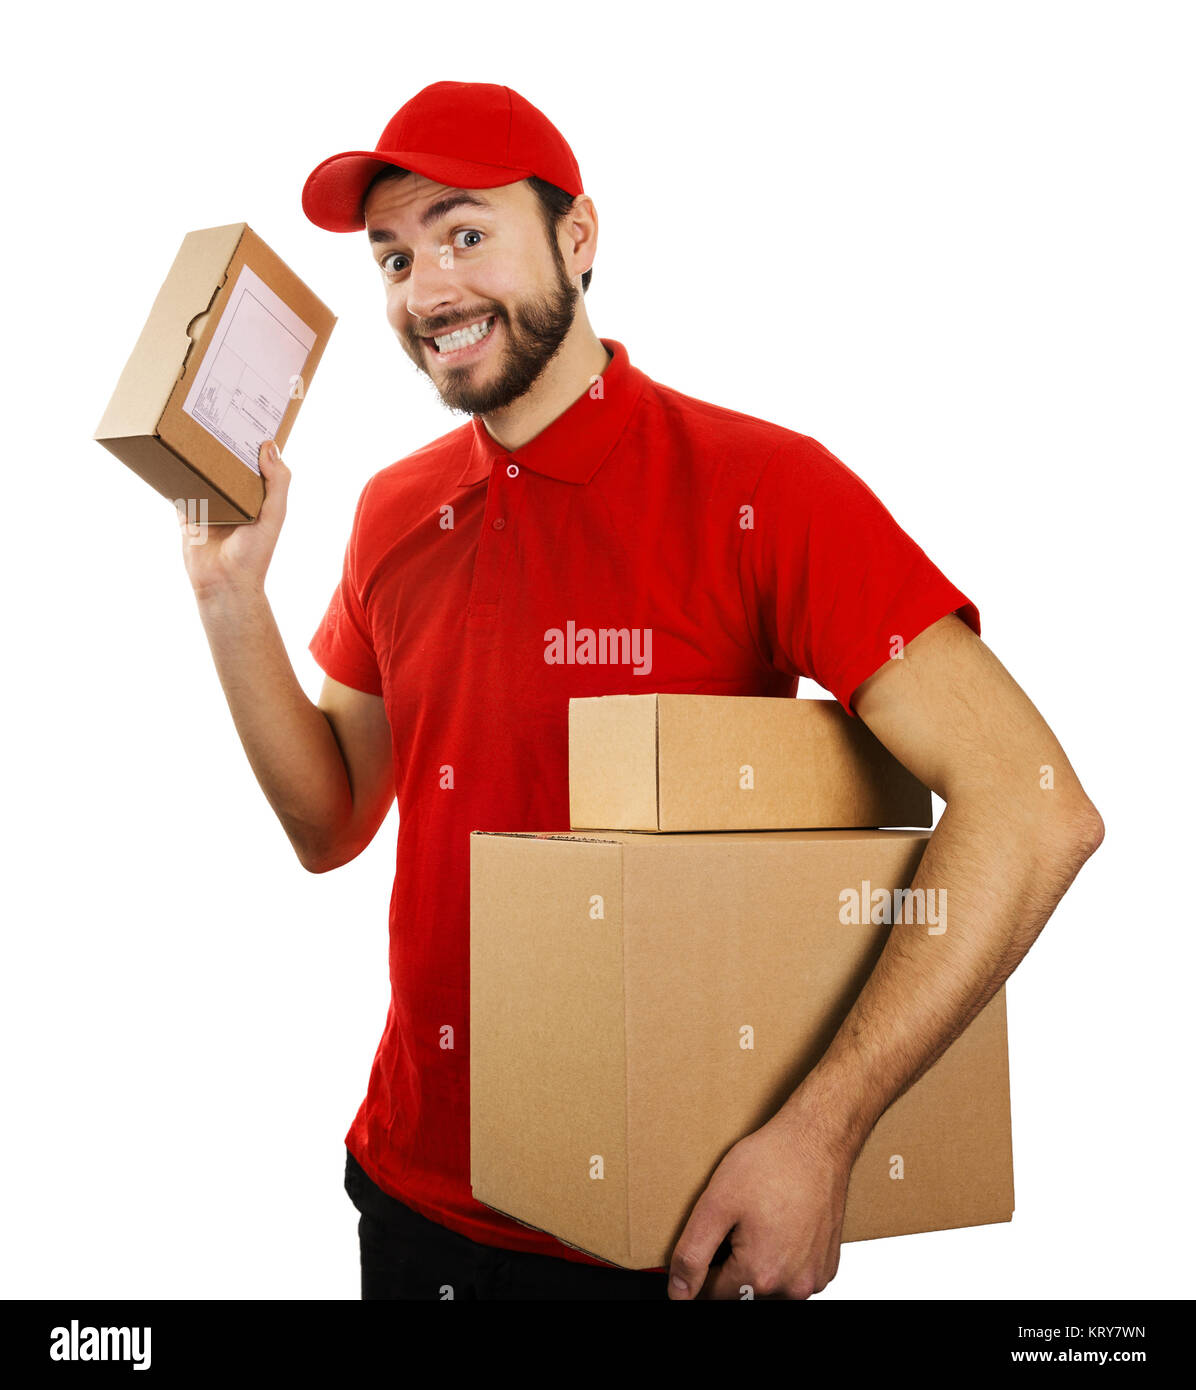 funny delivery service man with boxes isolated on white background - Stock Image